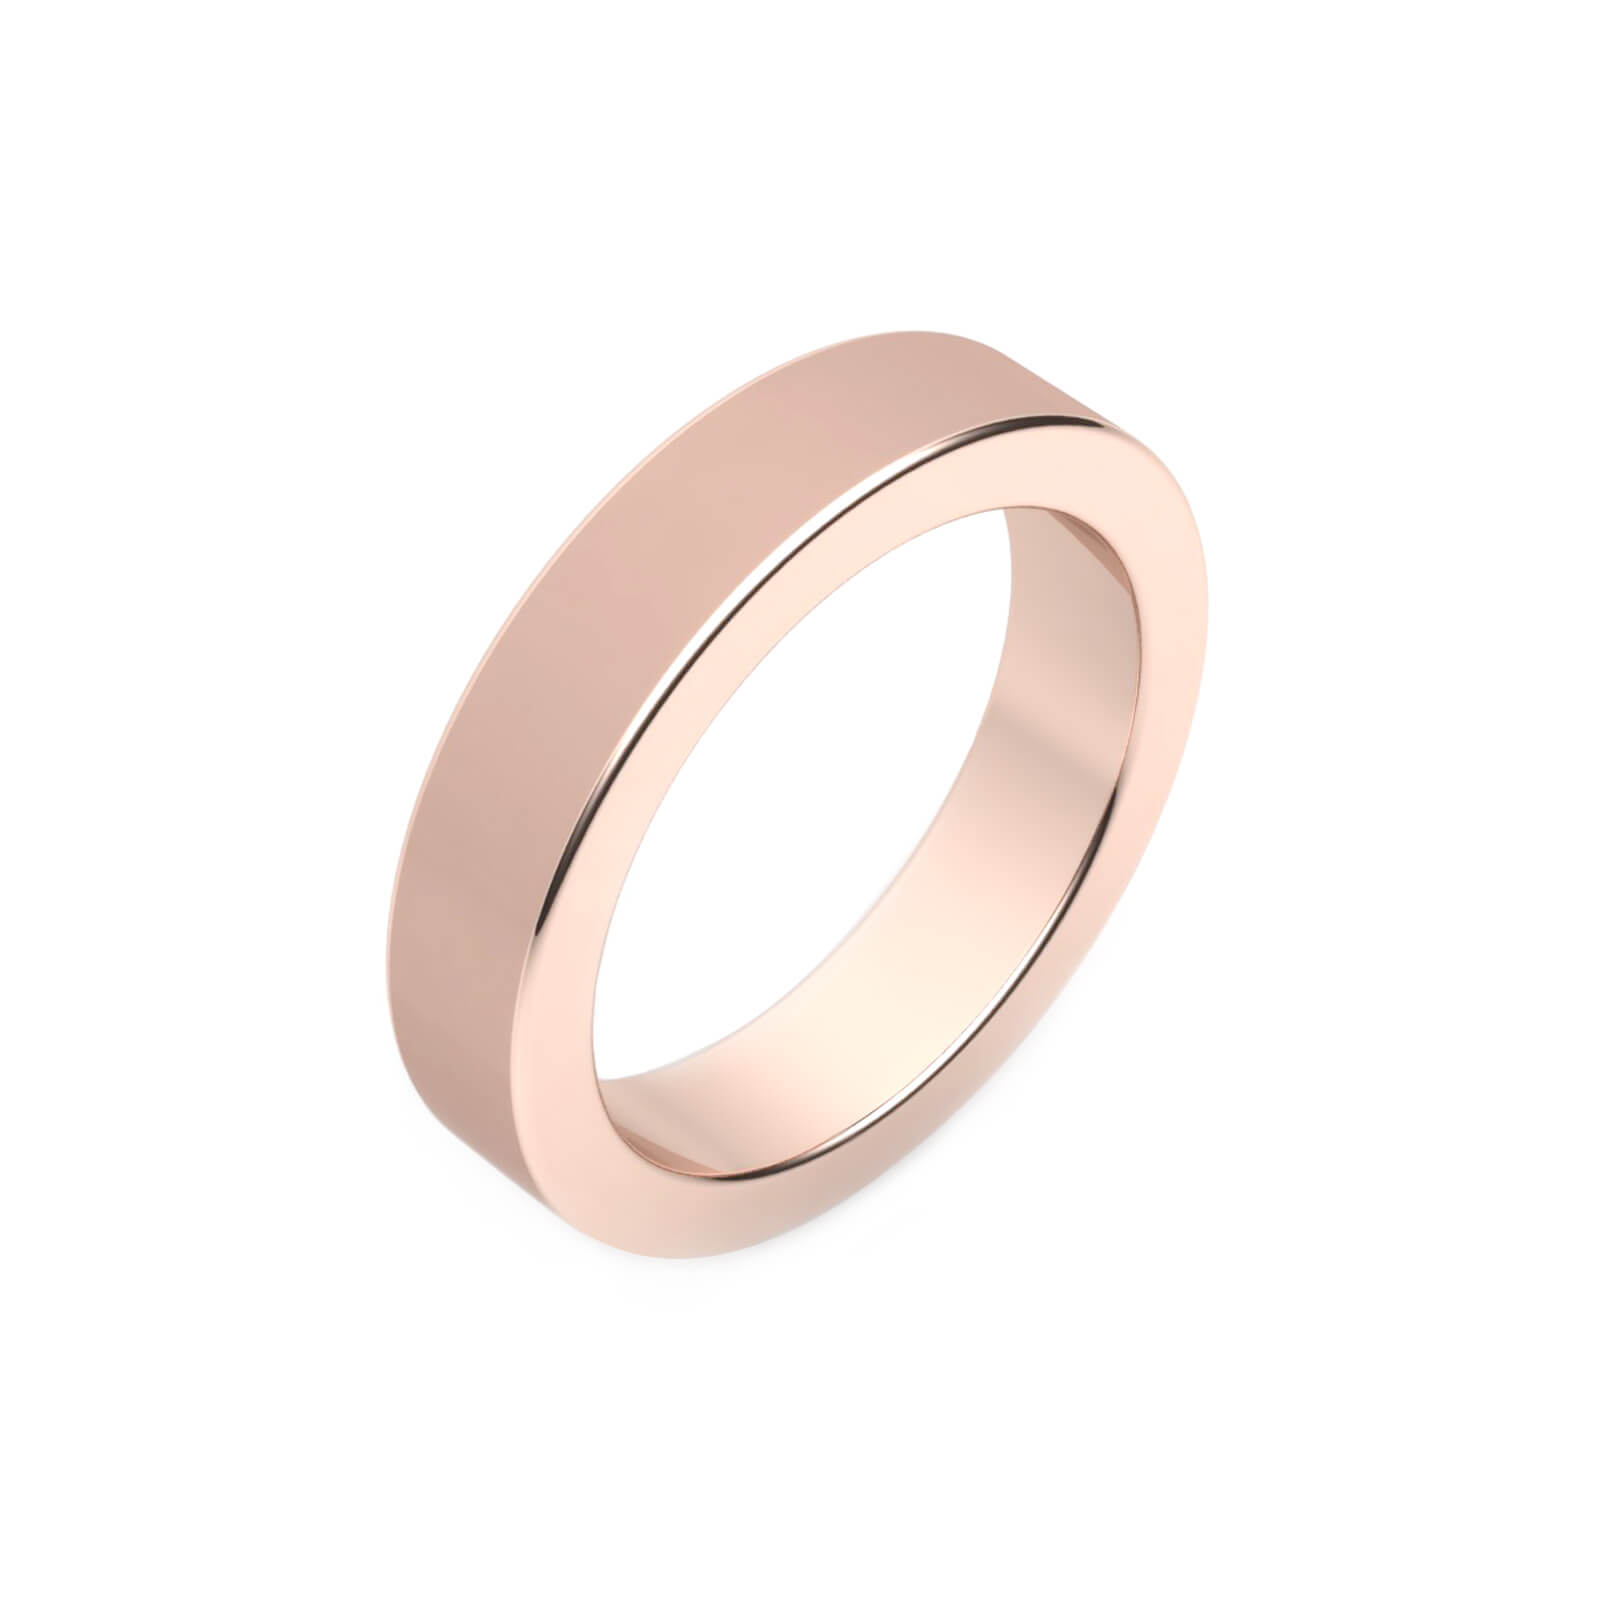 Men's Wedding Ring 18k pink gold